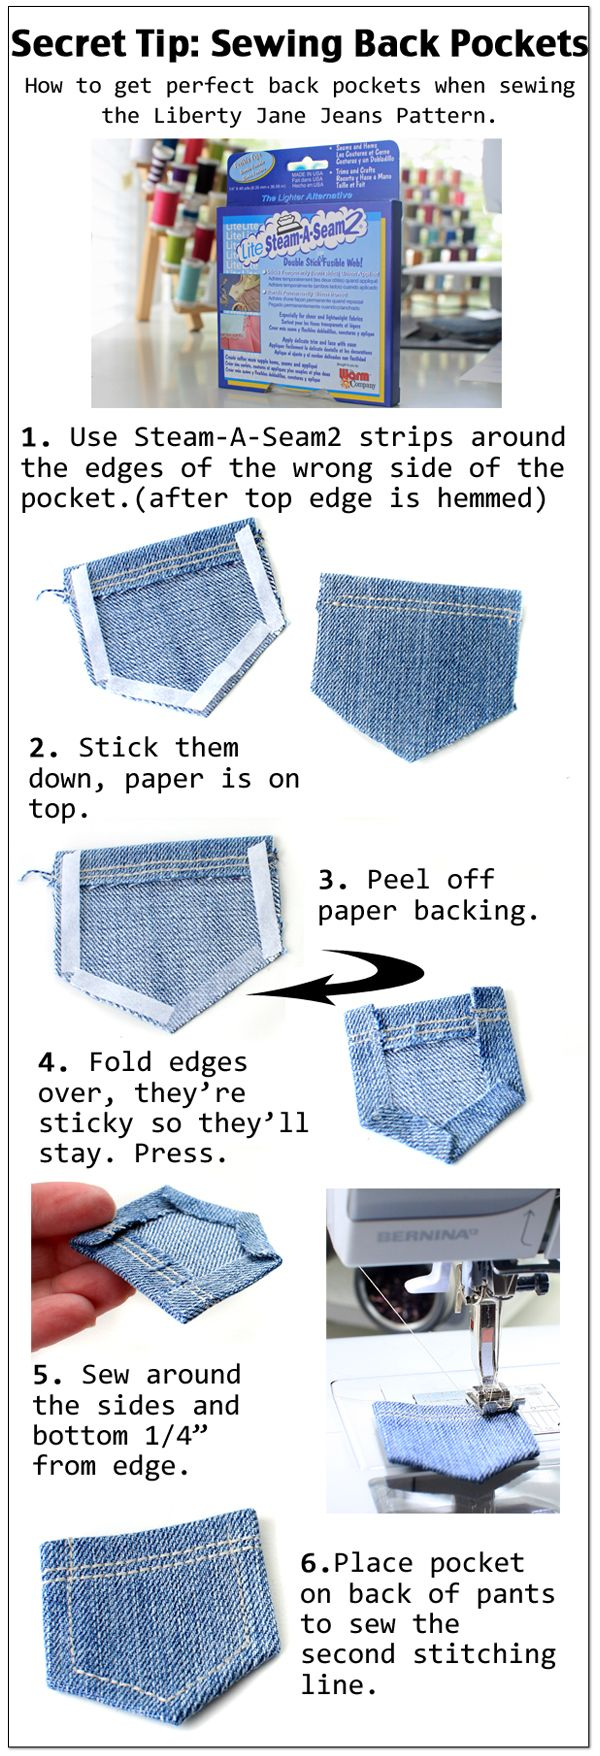 Cinnamon's tips for sewing back pockets onto Liberty Jane Jeans. www.libertyjanepatterns.com